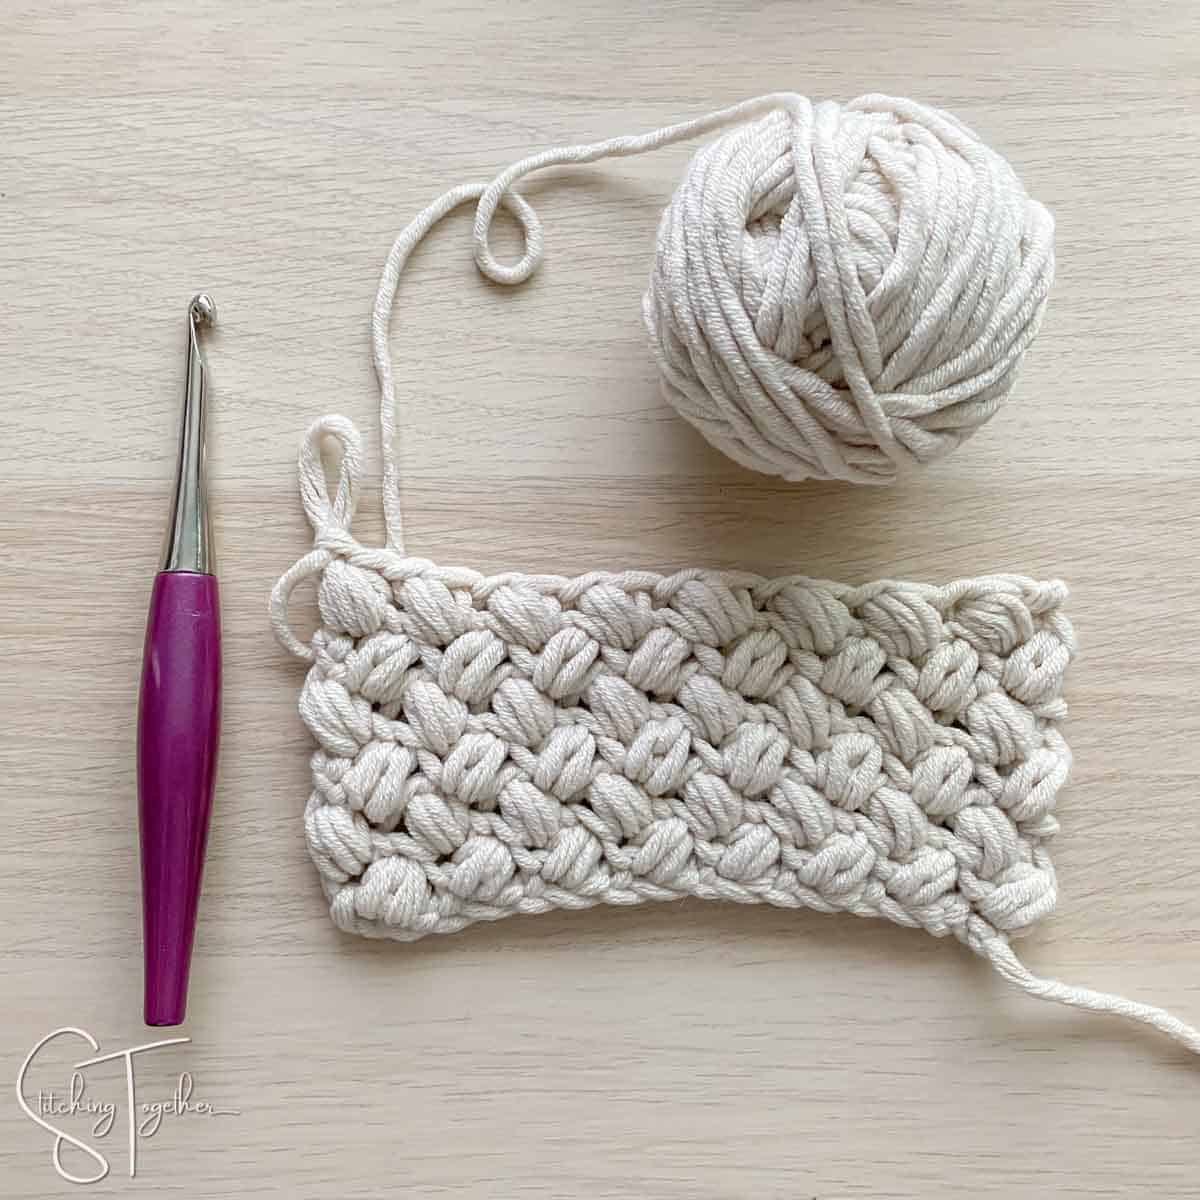 ball of yarn, hook, and bean stitch swatch